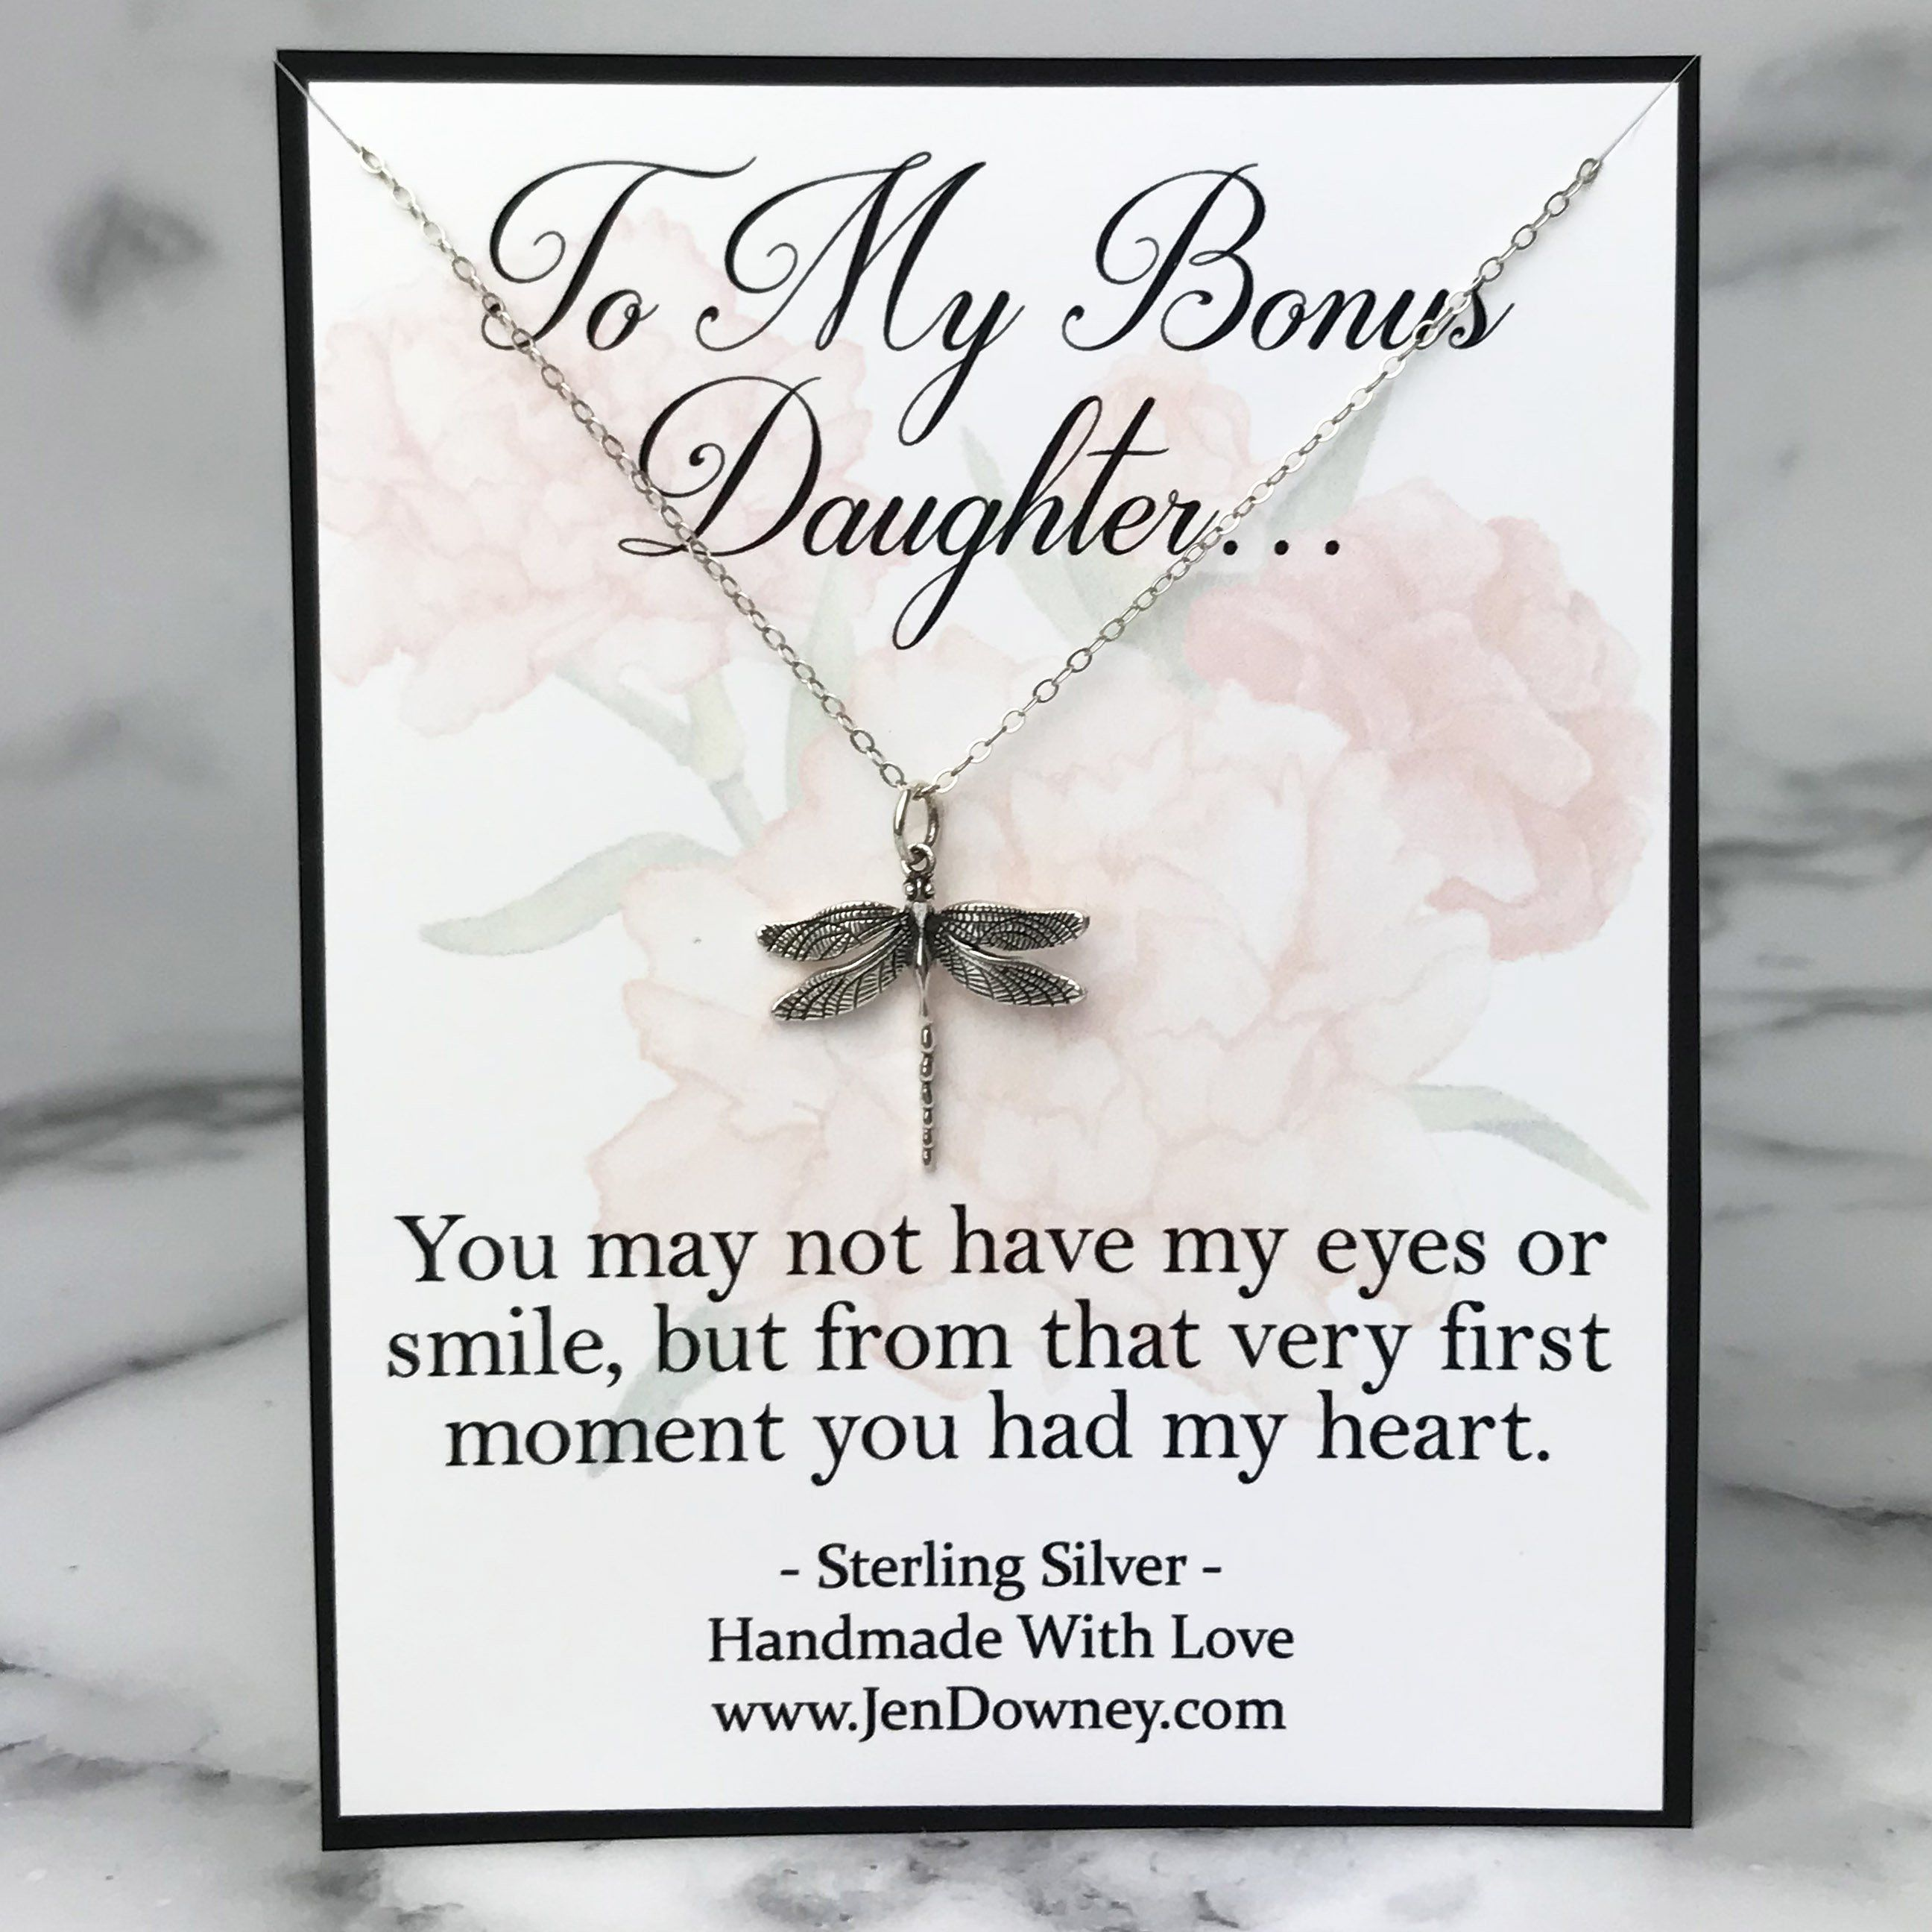 Bonus daughter adoptive or stepchild quote from mom or dad